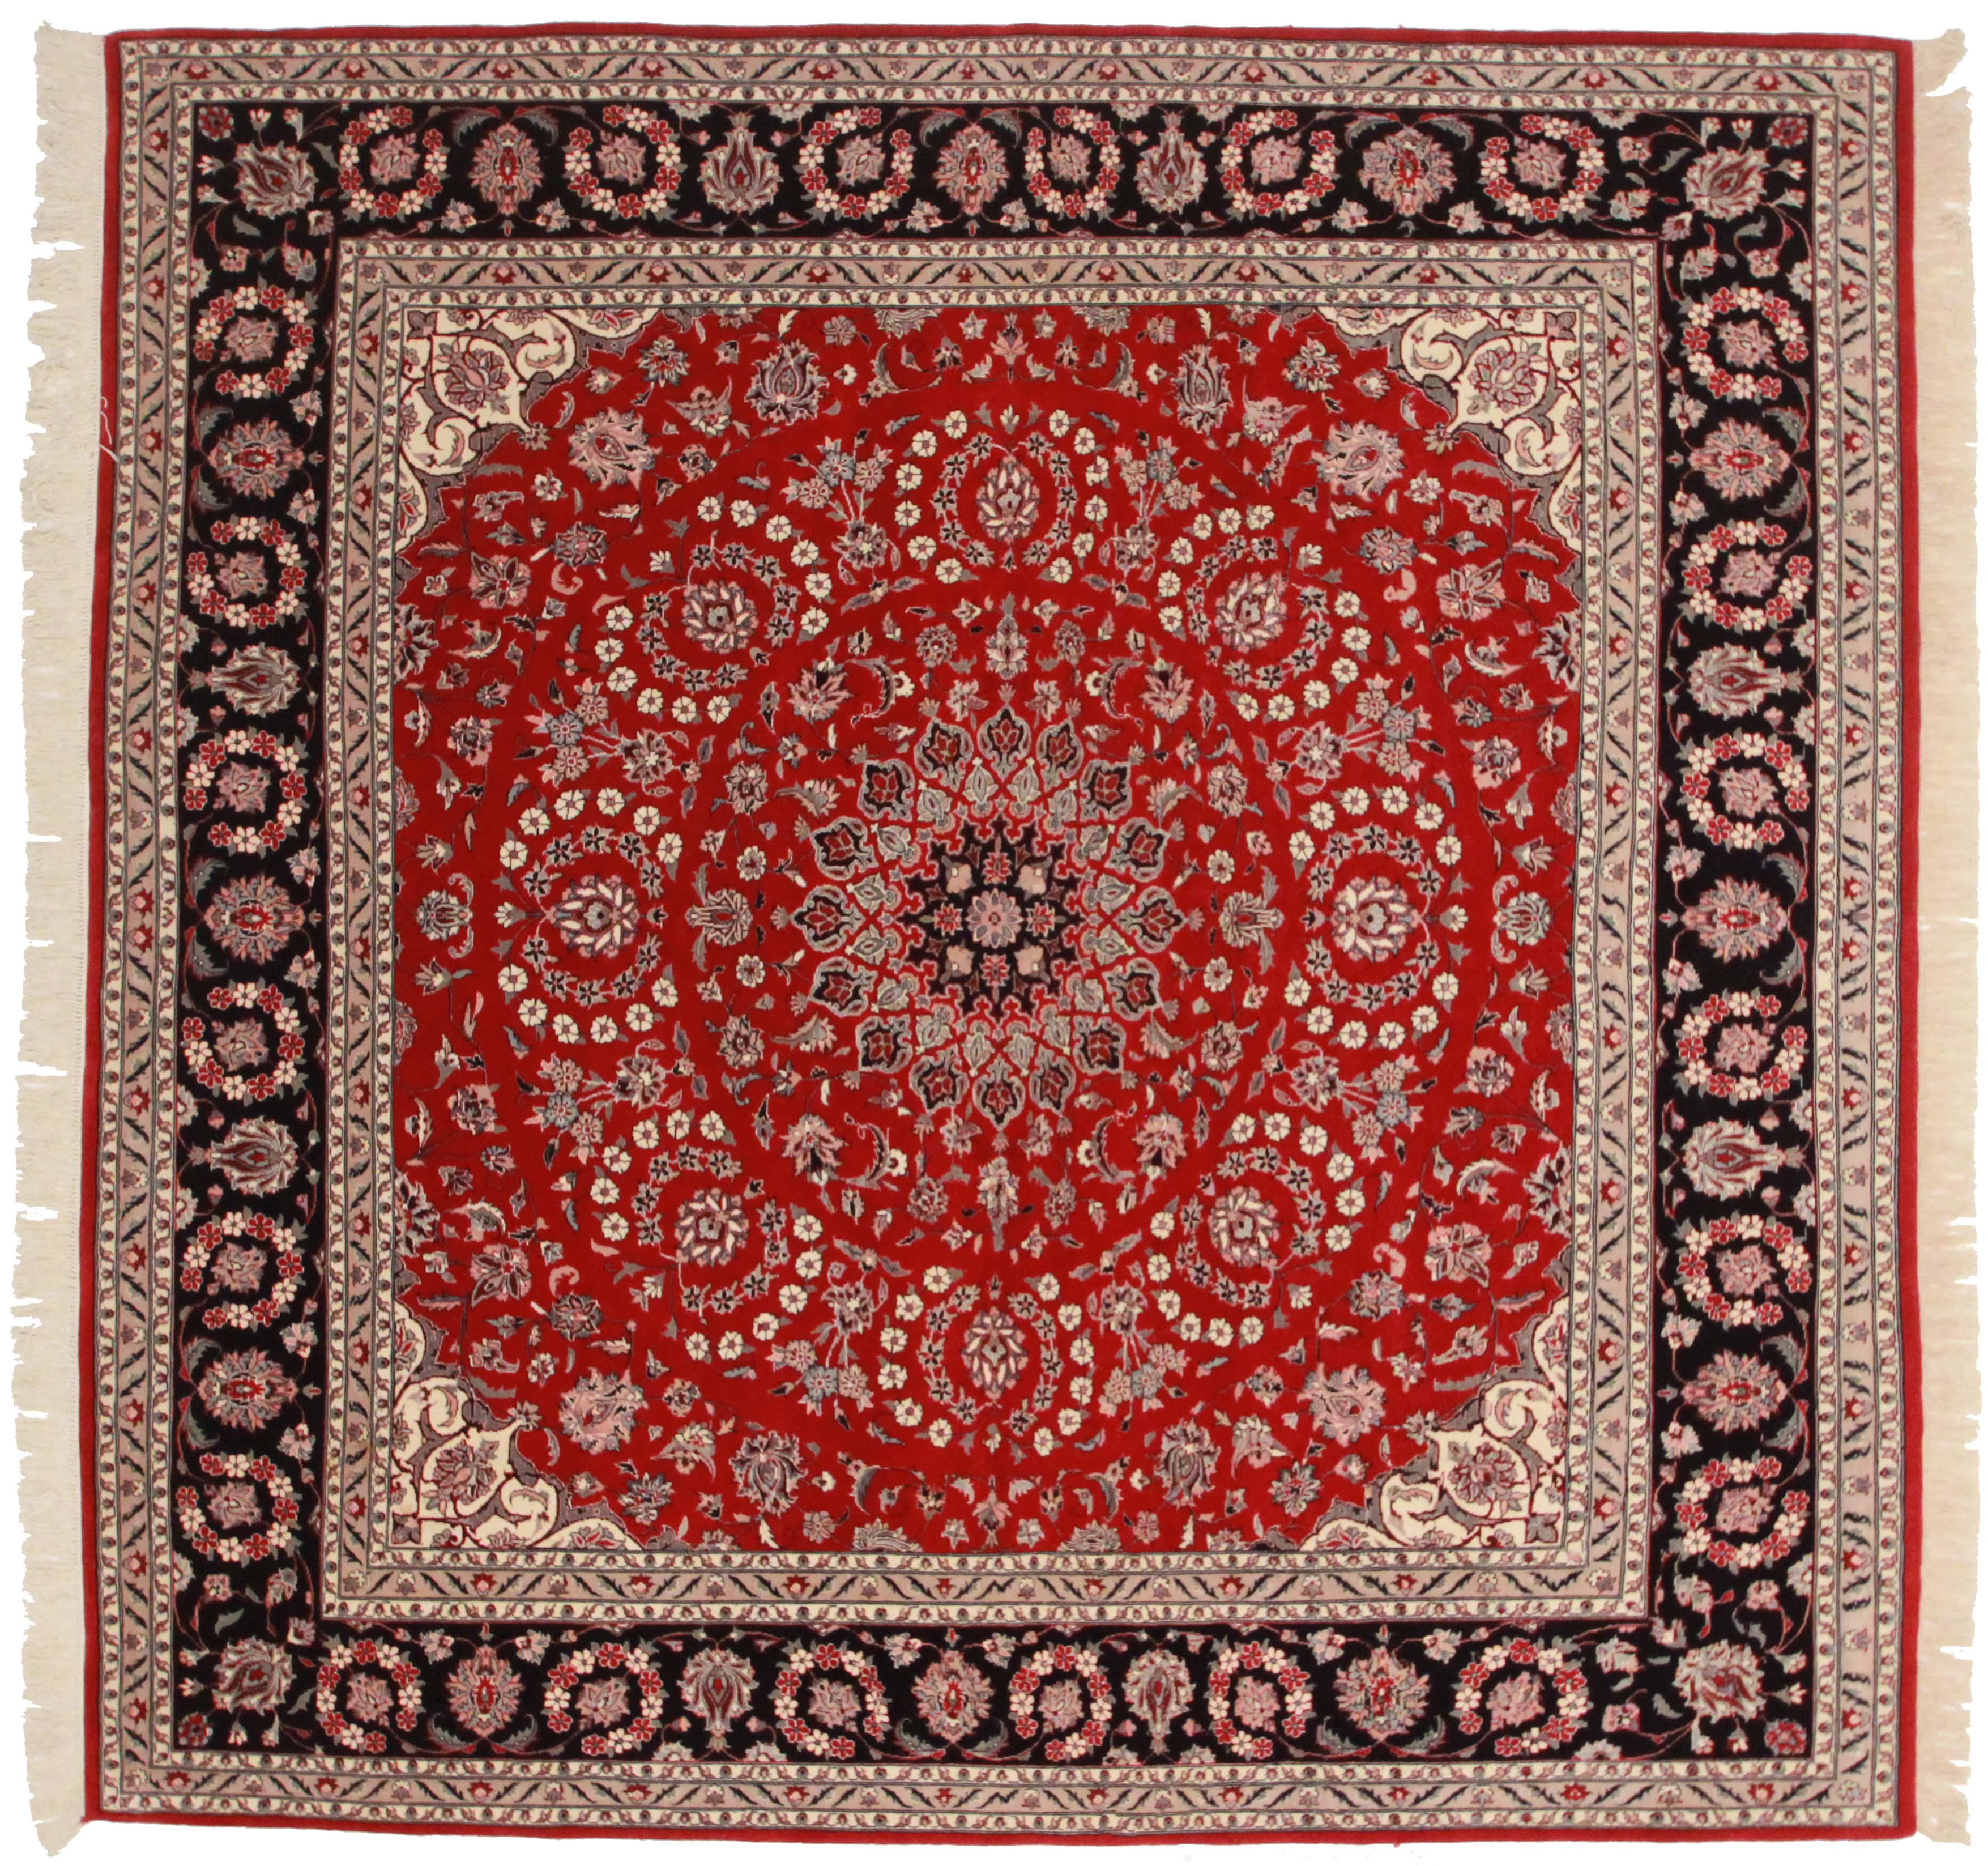 10x10 Square New Oushak Oriental Wool Area Rug: Square Pakistani 8×8 Wool Oriental Rug 5720